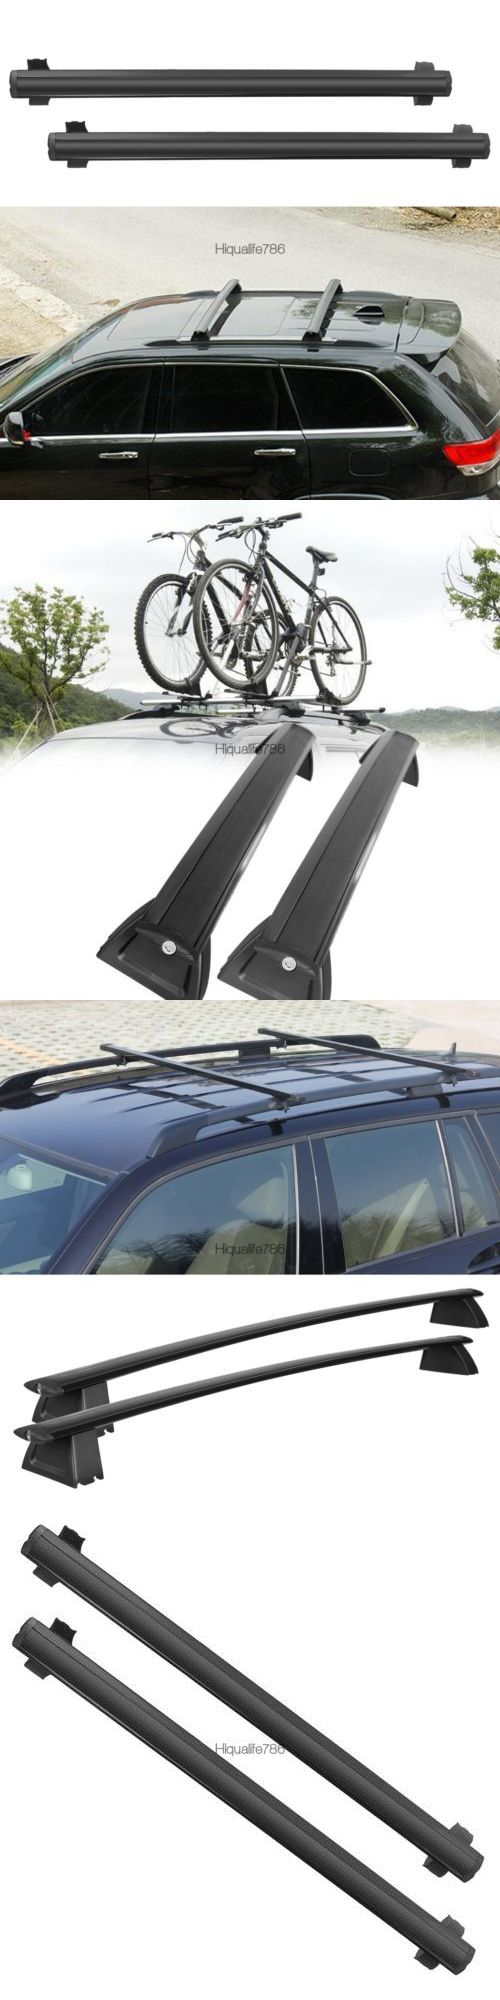 Weathertech floor mats grand forks - Other Kayak Canoe And Rafting 36123 Cross Bar Crossbar Roof Rack Fit For 2011